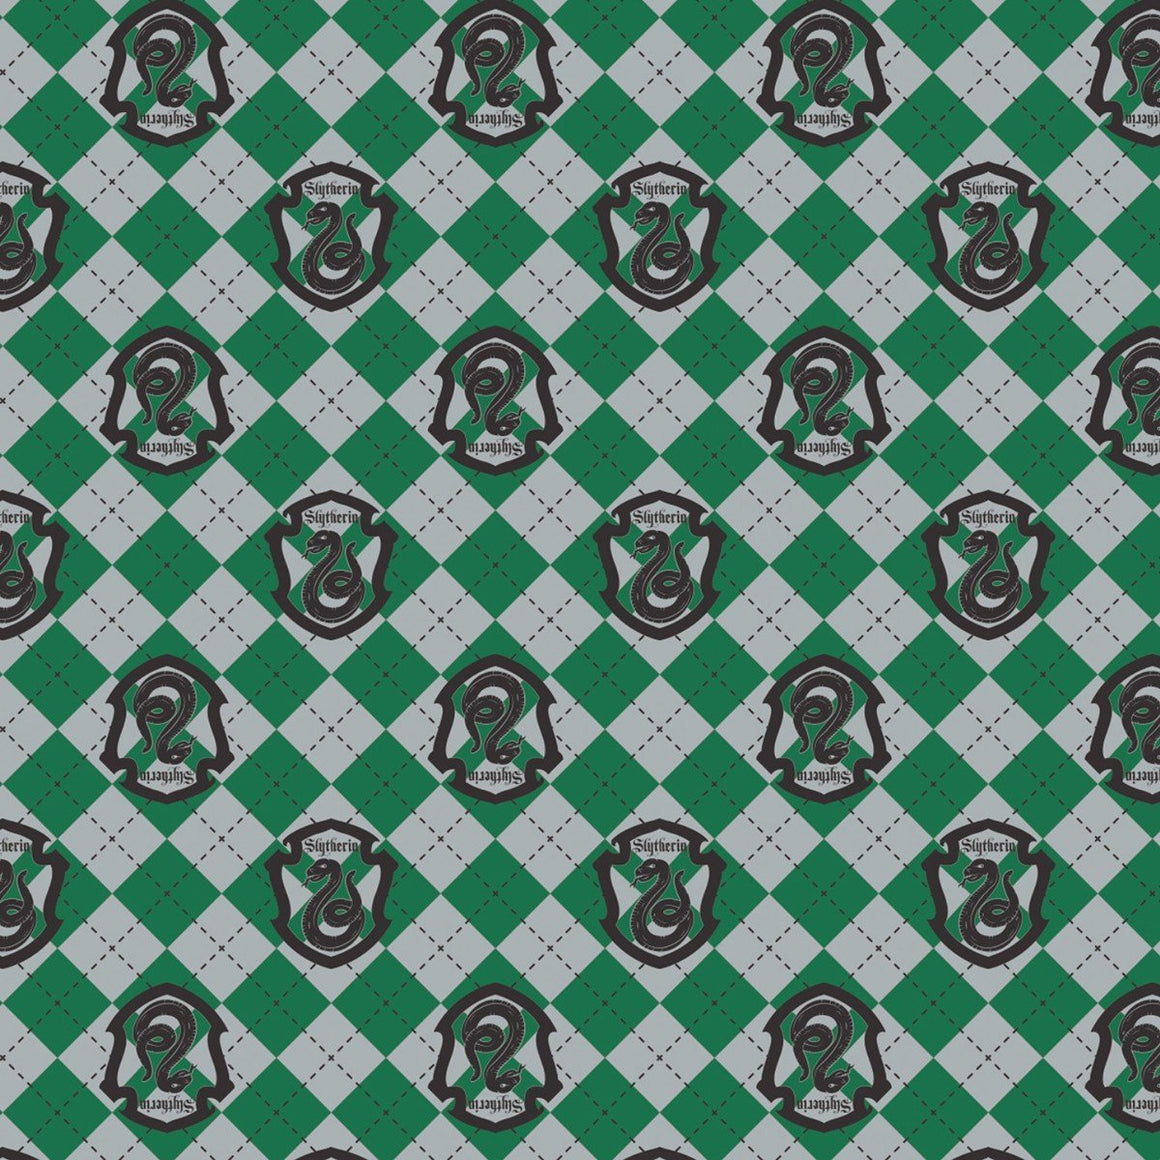 Green Grey and Black Slytherin Crest Harry Potter Argyle Flannel, 1 Yard - Raspberry Creek Fabrics